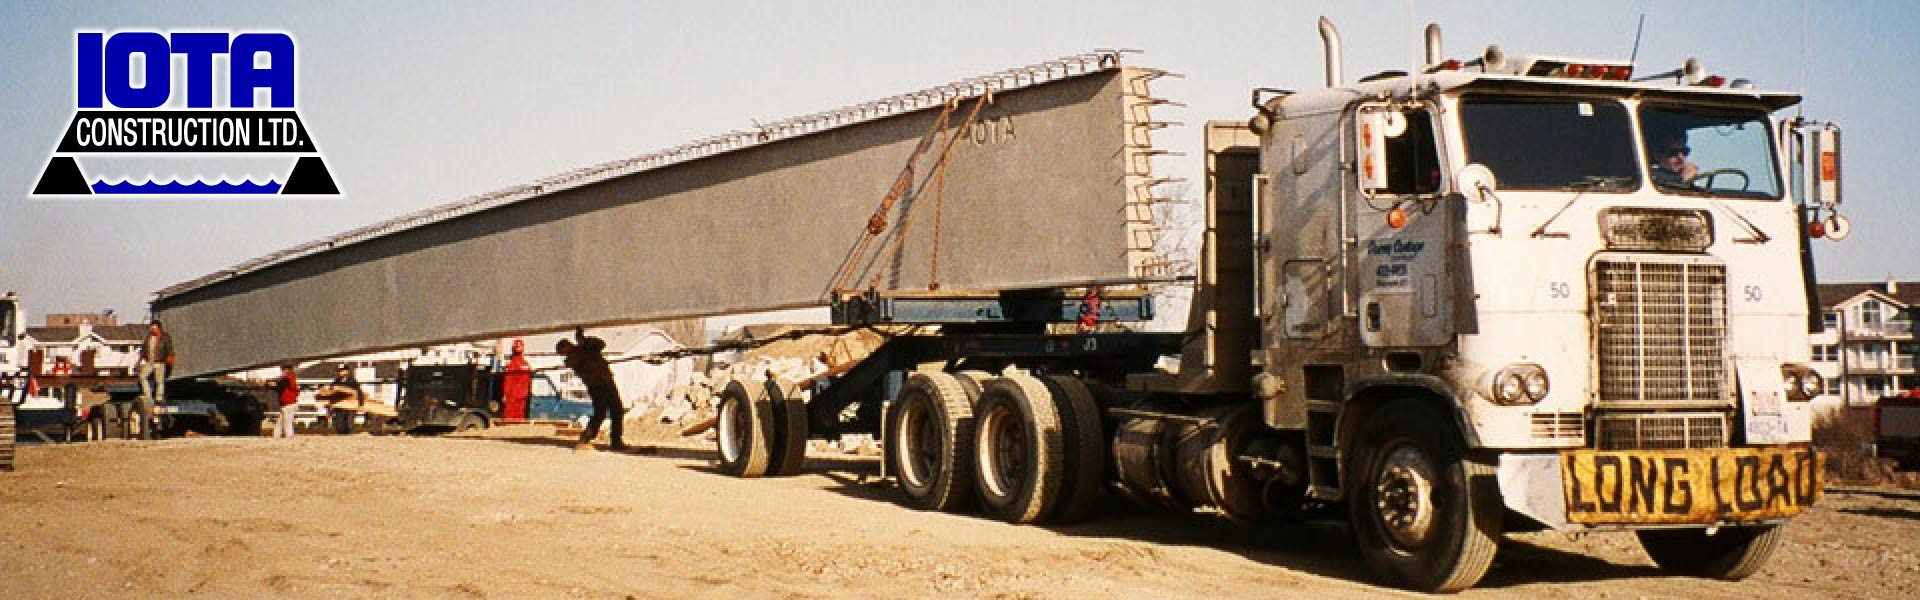 Hauling prefabricated concrete | IOTA Construction